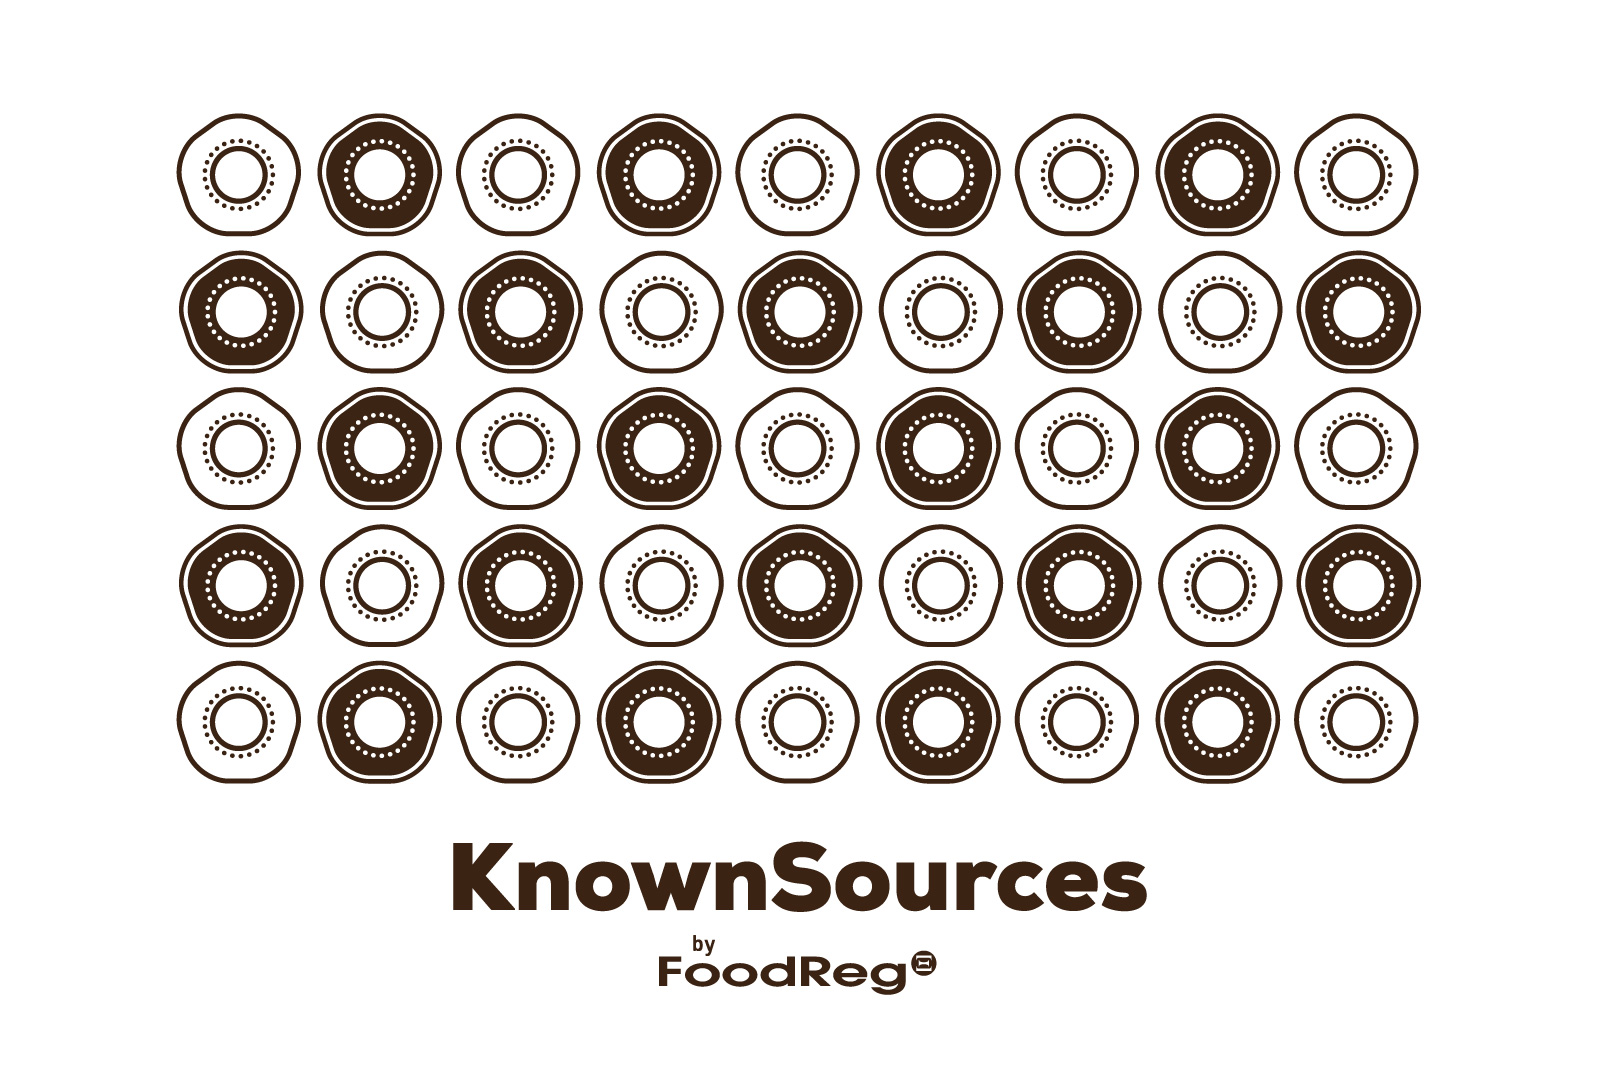 knownsources logo